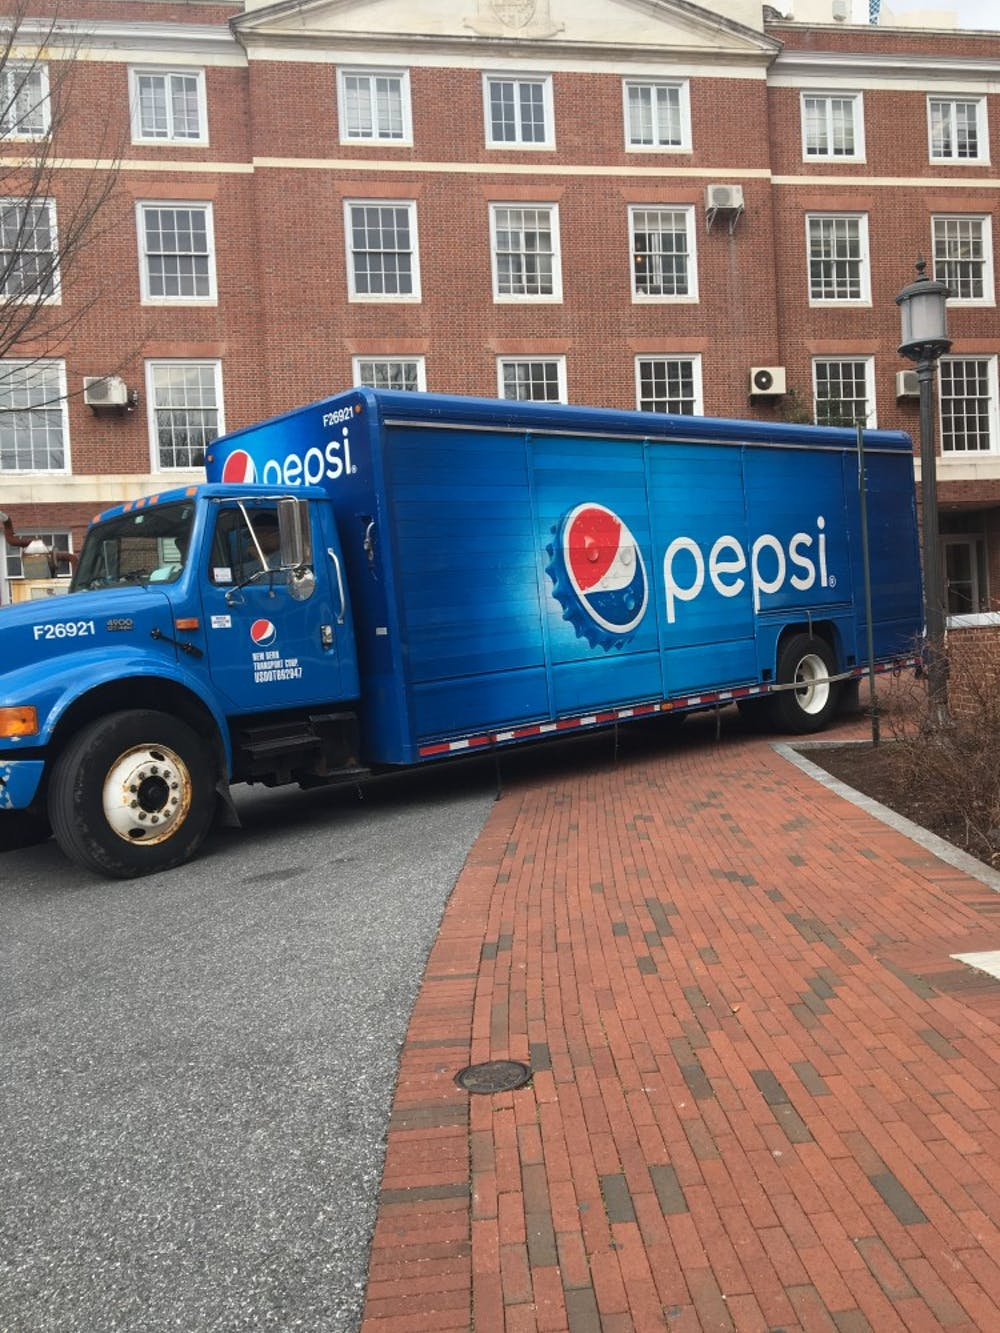 Students call for end to Hopkins-PepsiCo contract - The